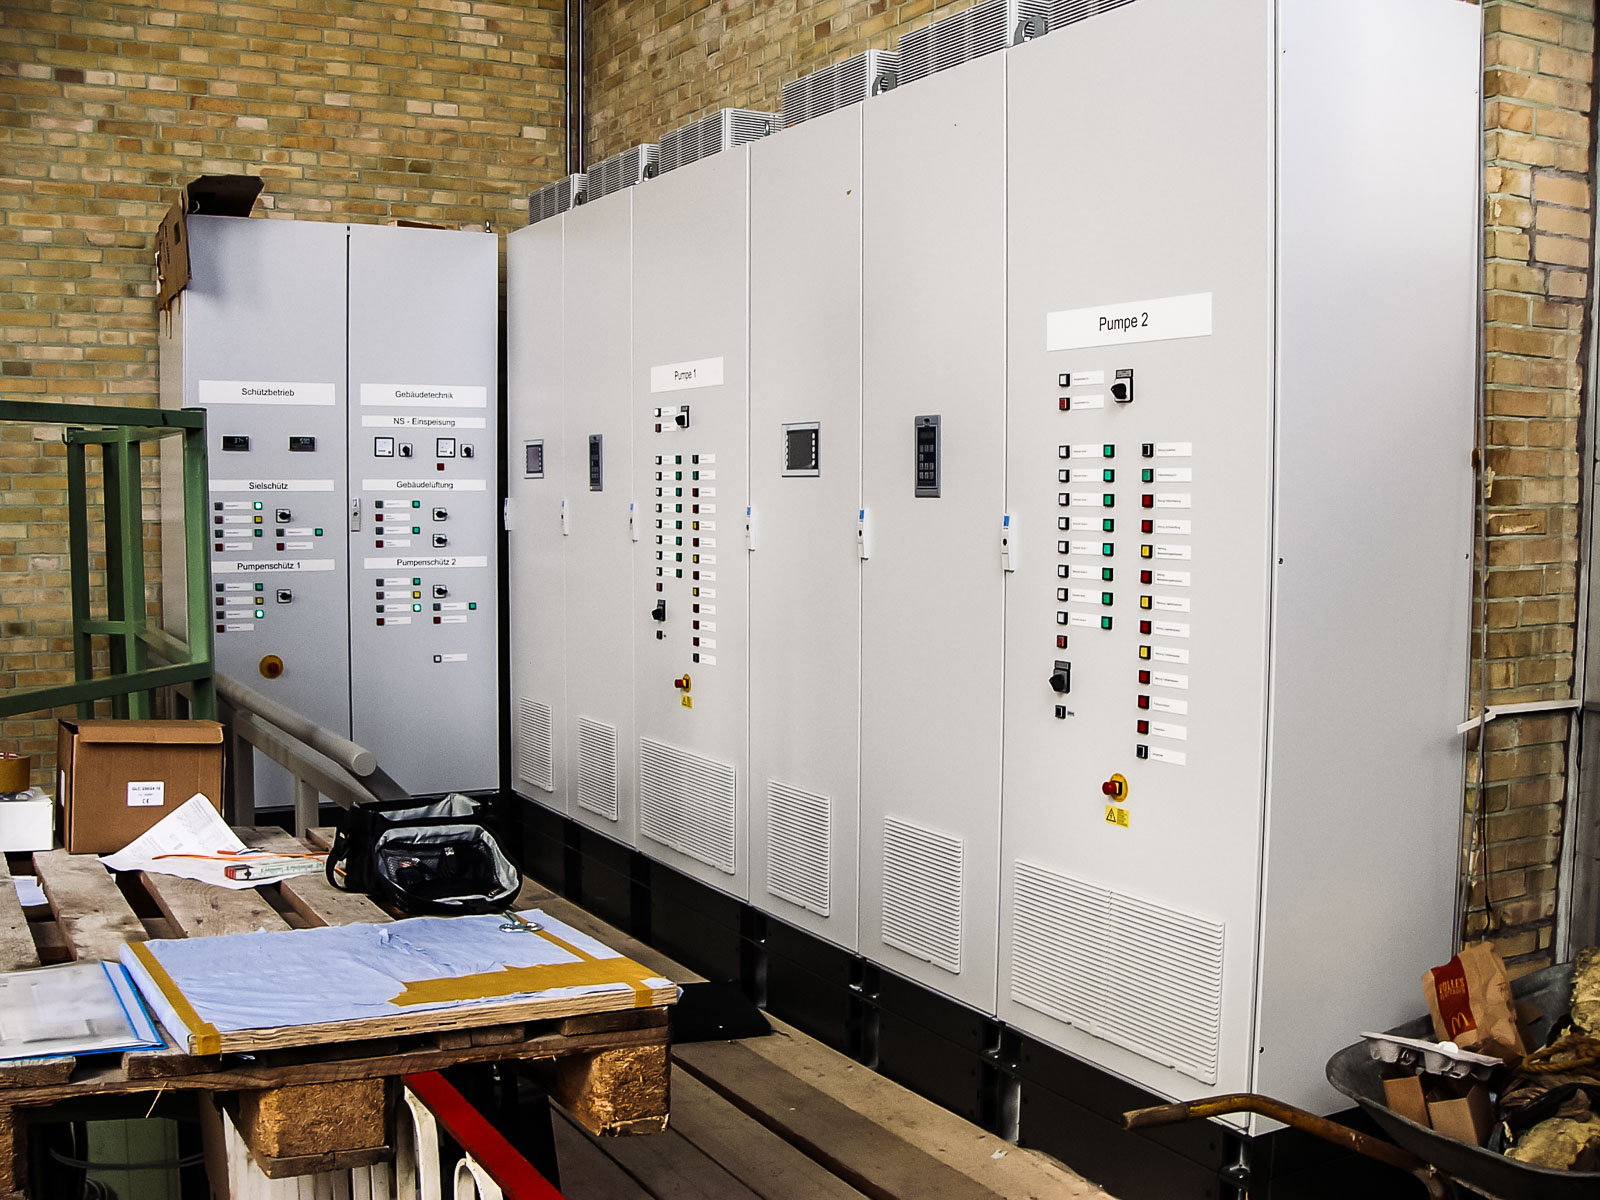 Drive Systems For Your Test Area Up To 138 Kv 10 Mw Wiring As Well 200kw Ac Motor Soft Starter Power High Level Of System Efficiency And Low Operating Costs